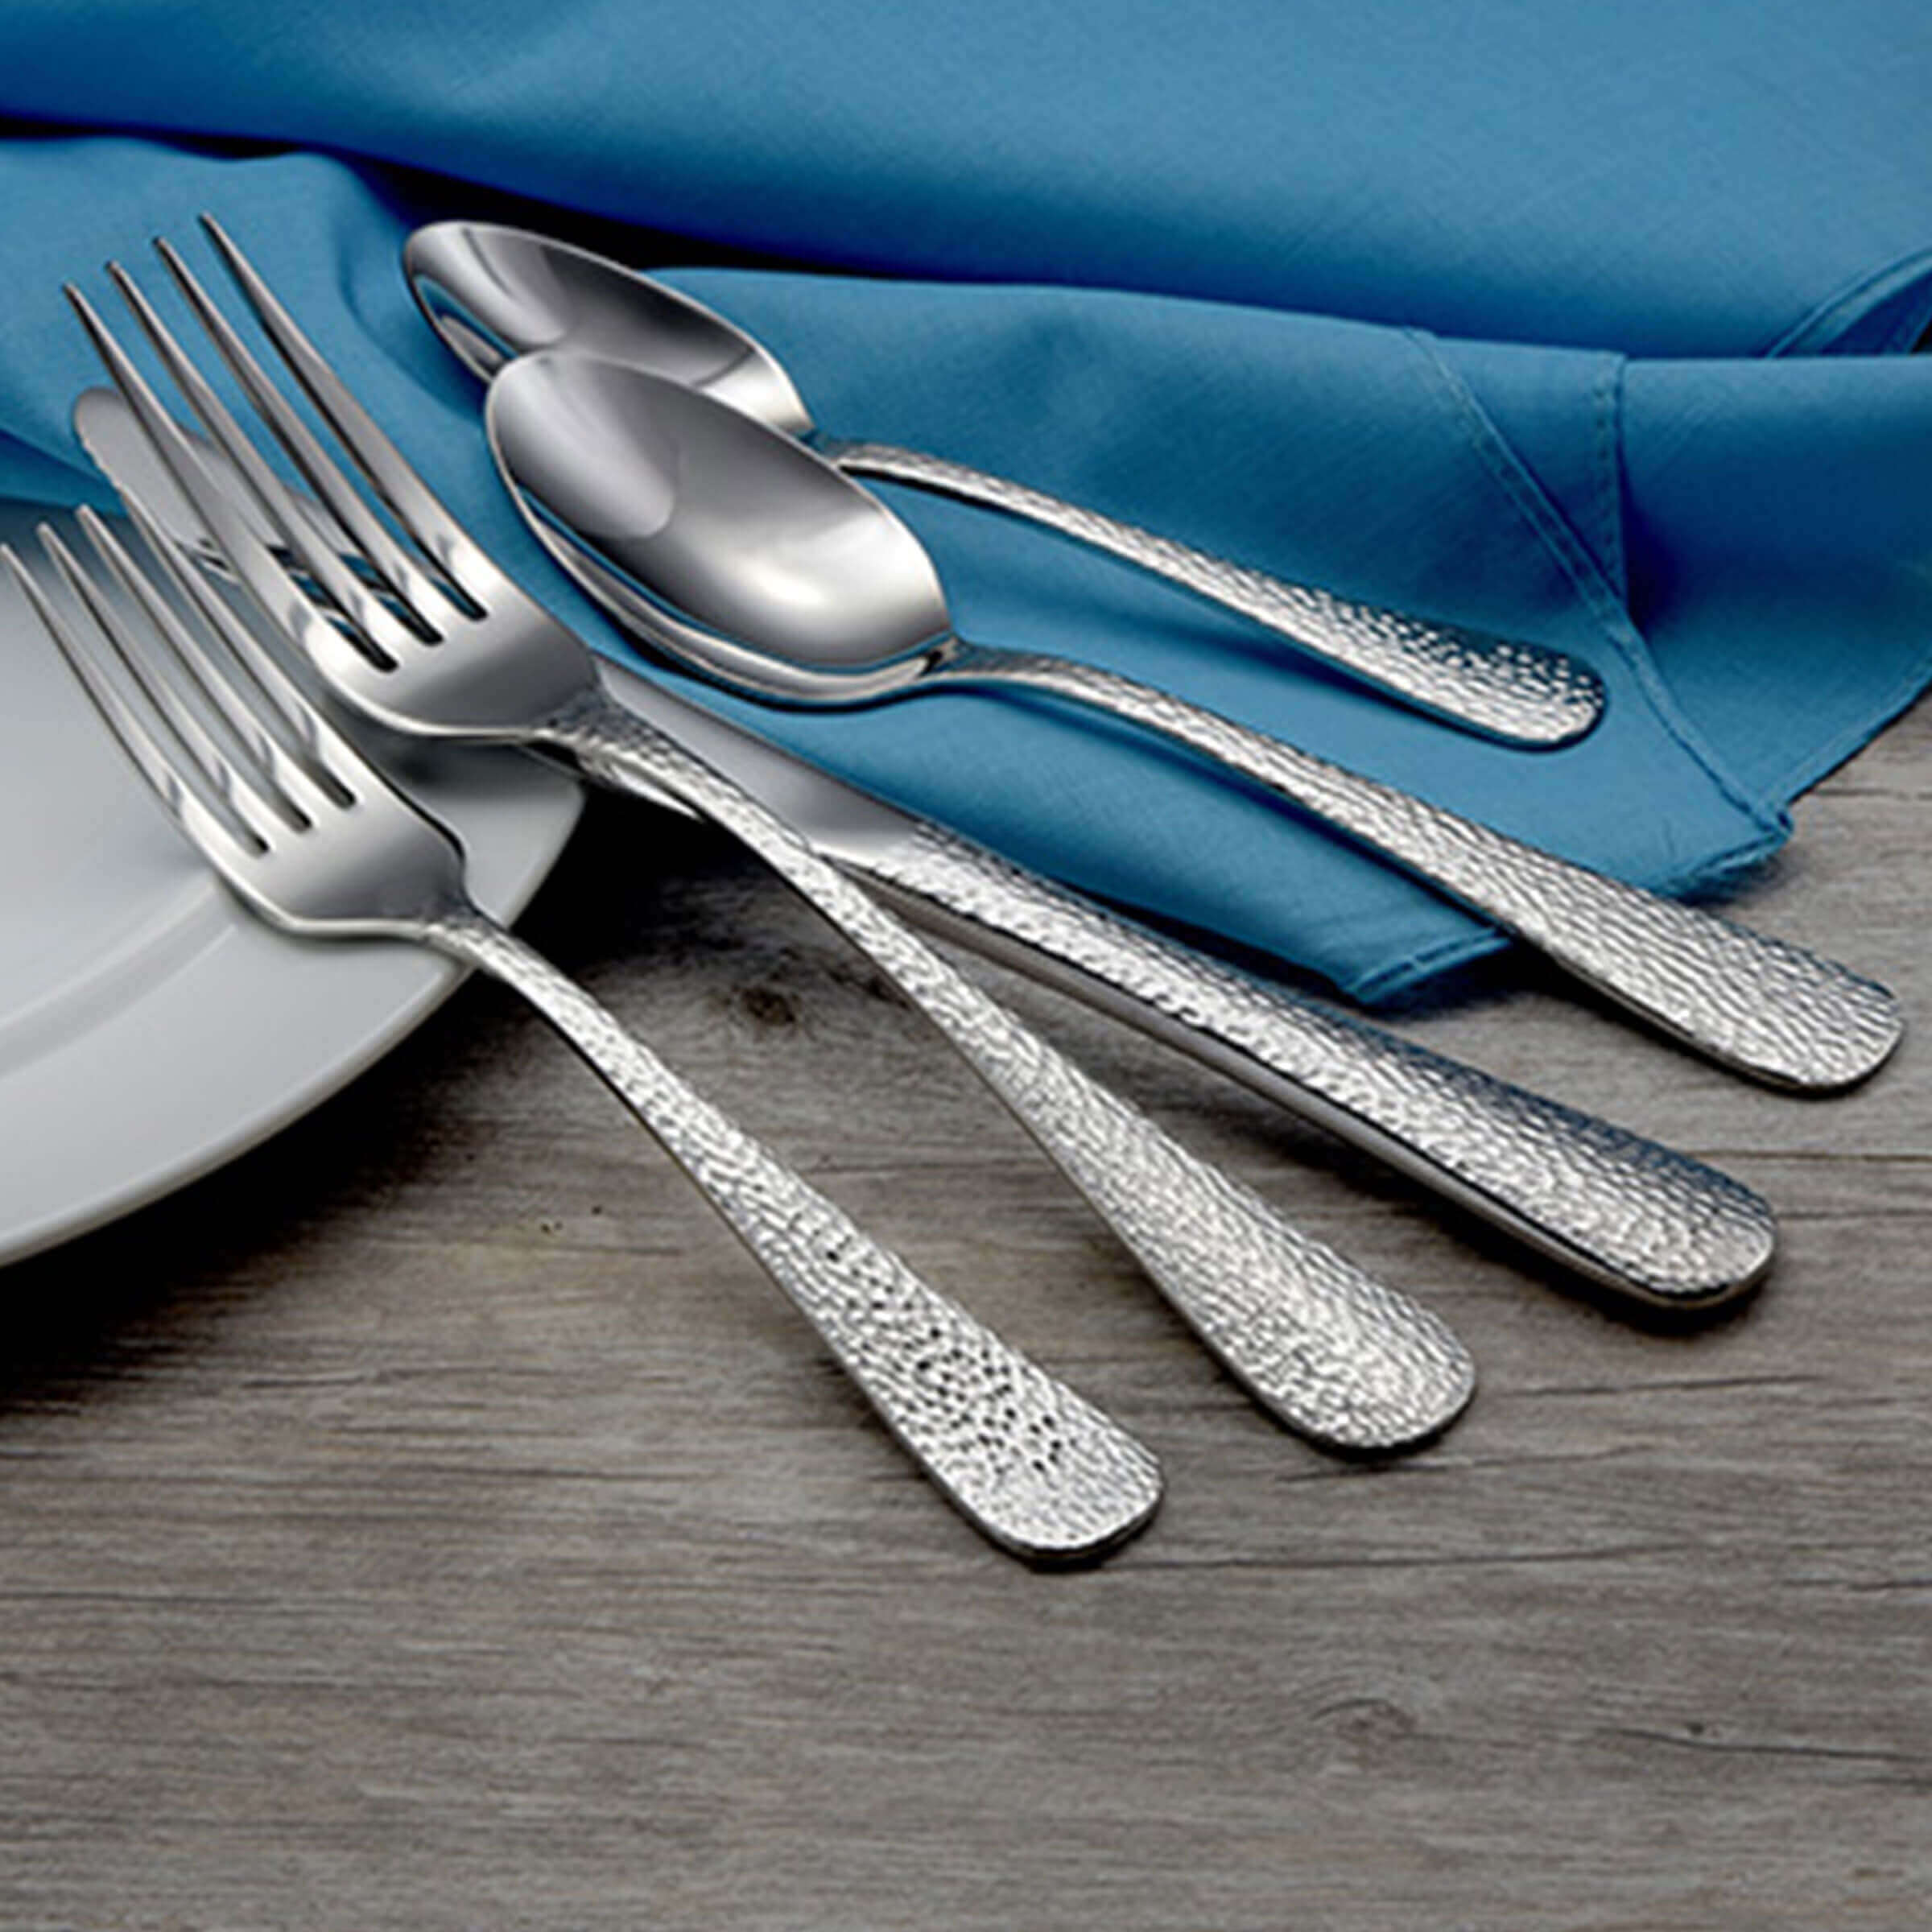 Shop Quality Made in USA Flatware from Liberty Tabletop